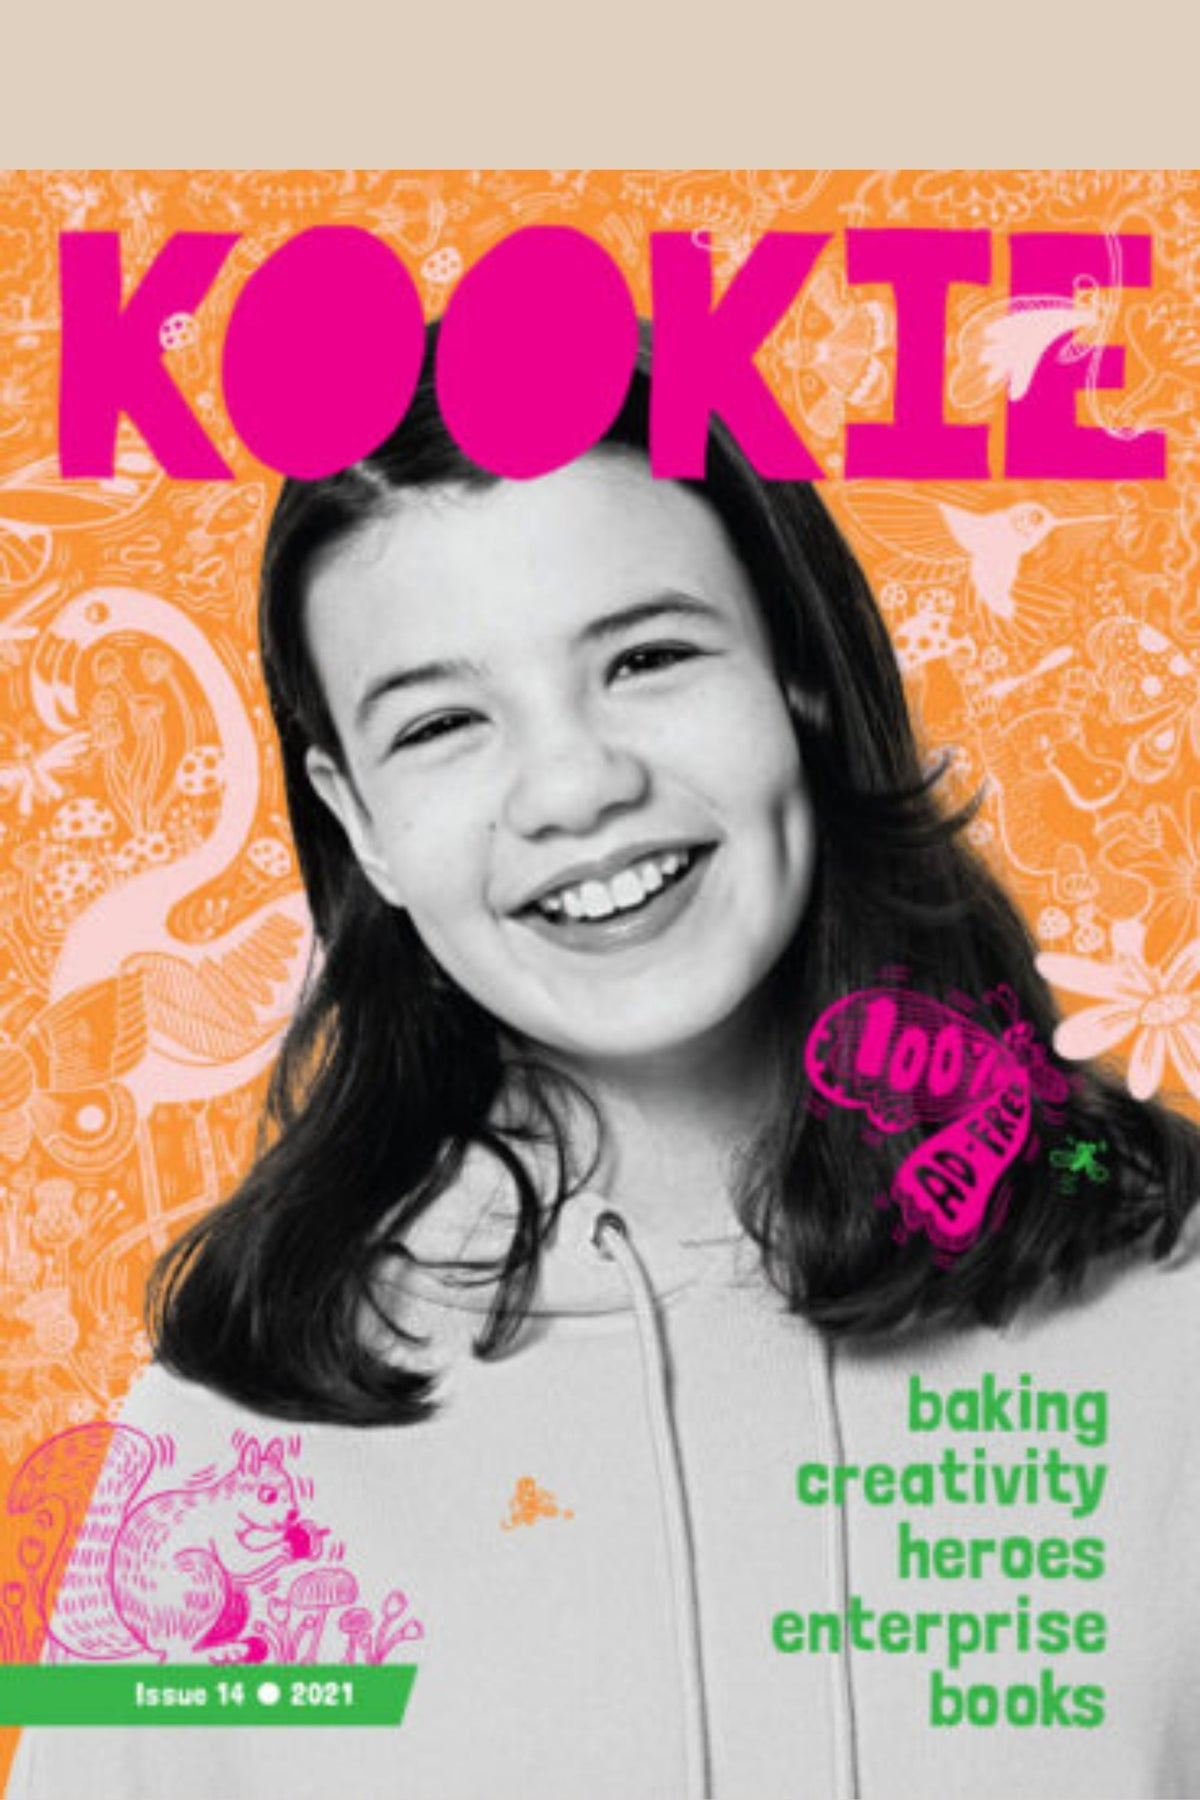 Kookie Issue 14 - a kid's magazine aimed at girls